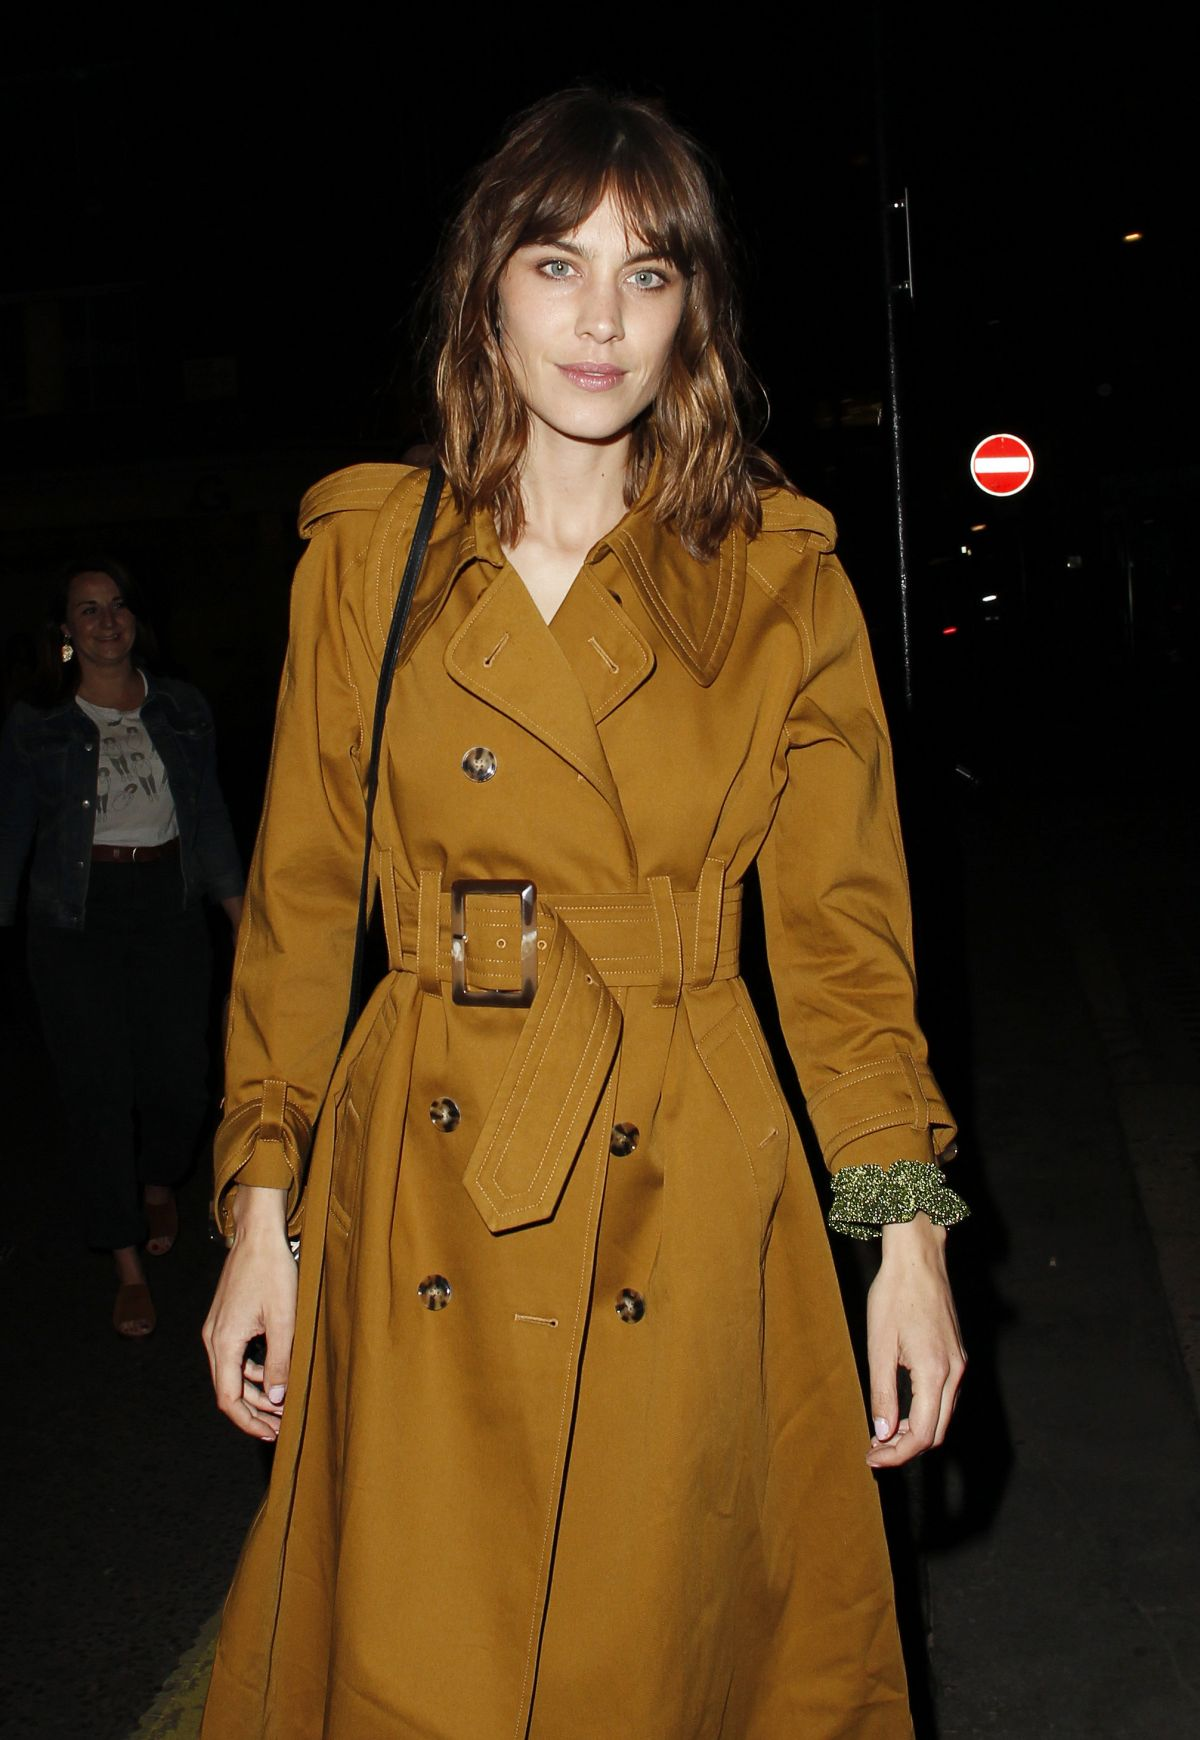 ALEXA CHUNG Arrives at Alexa Chung Launch Party in London 05/30/2017